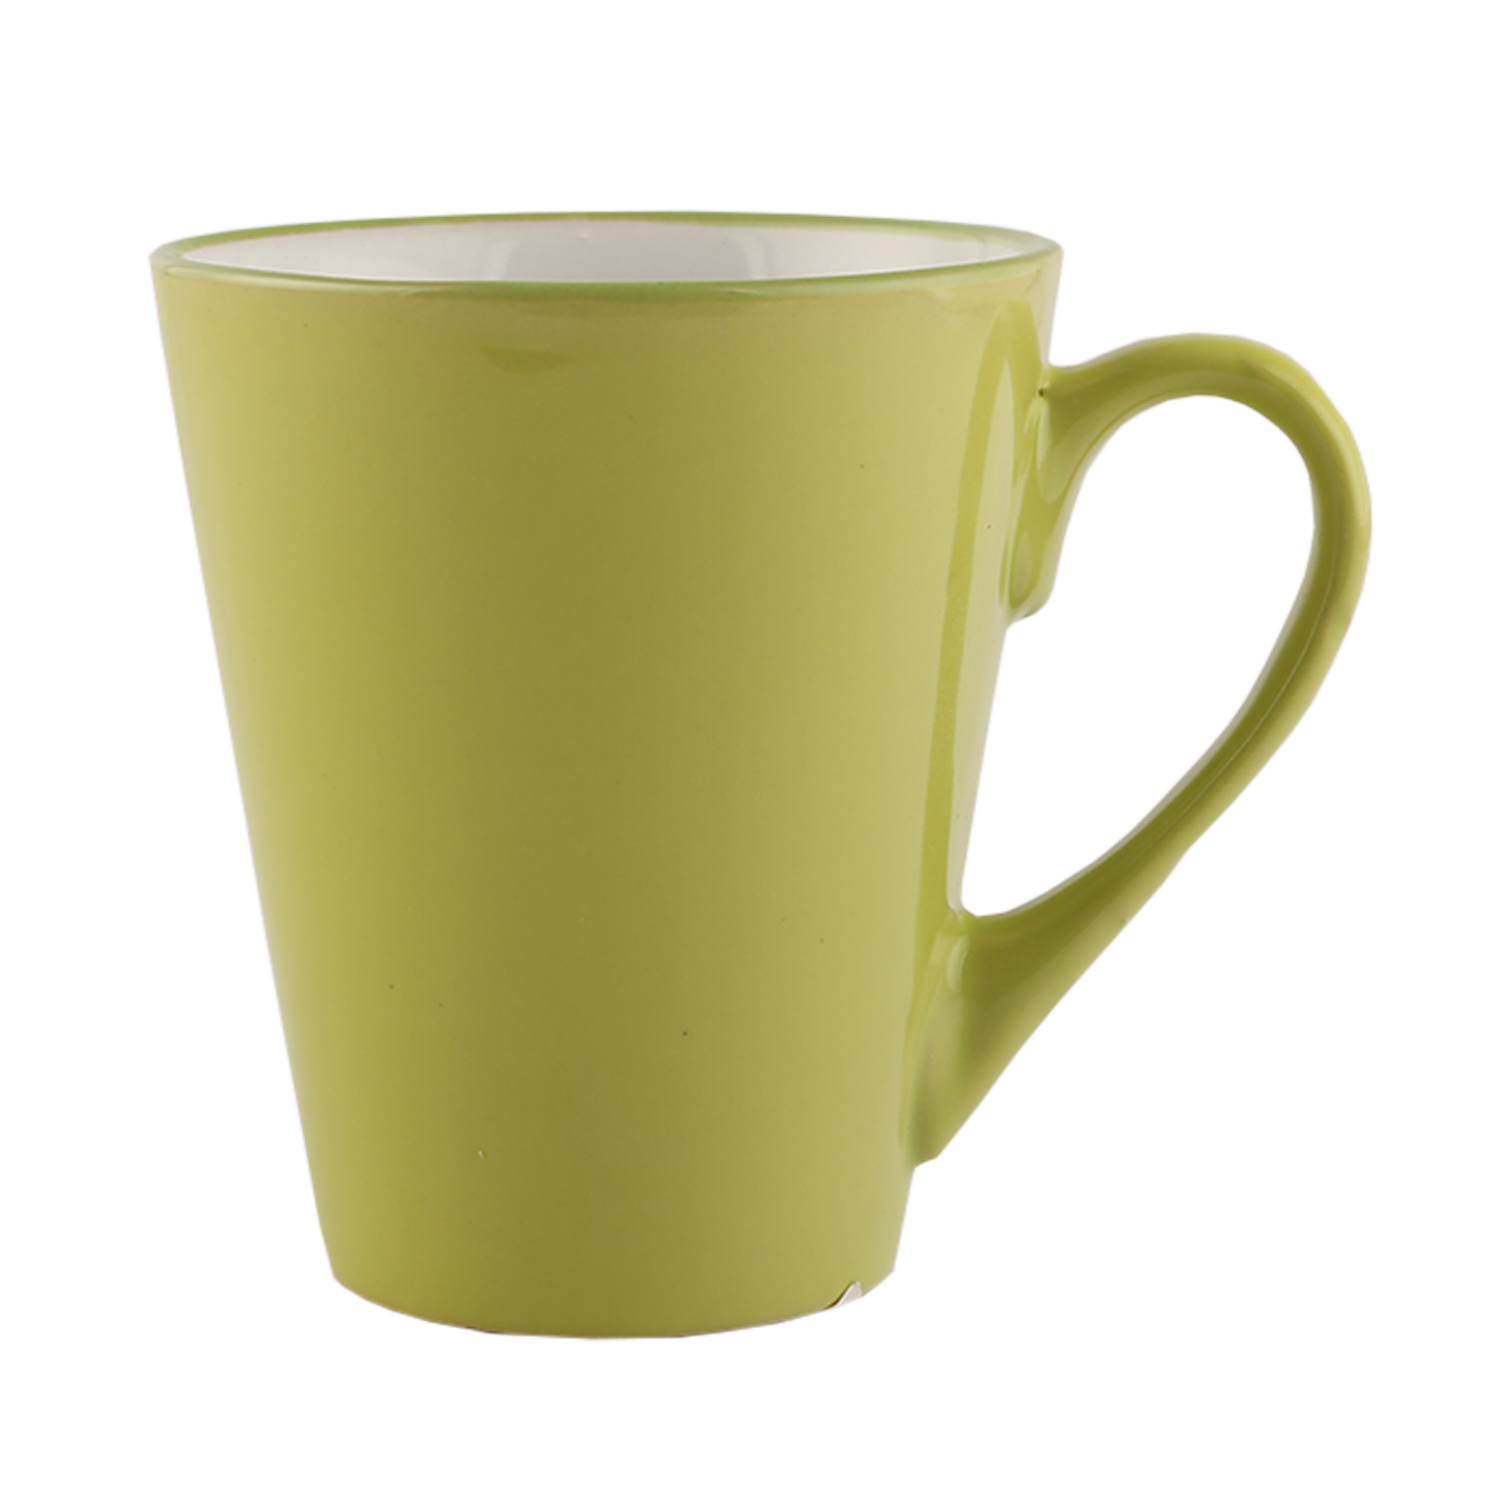 Lime Solid Coffe Mug Ceramic Coffee Mugs in Lime Colour by Living Essence